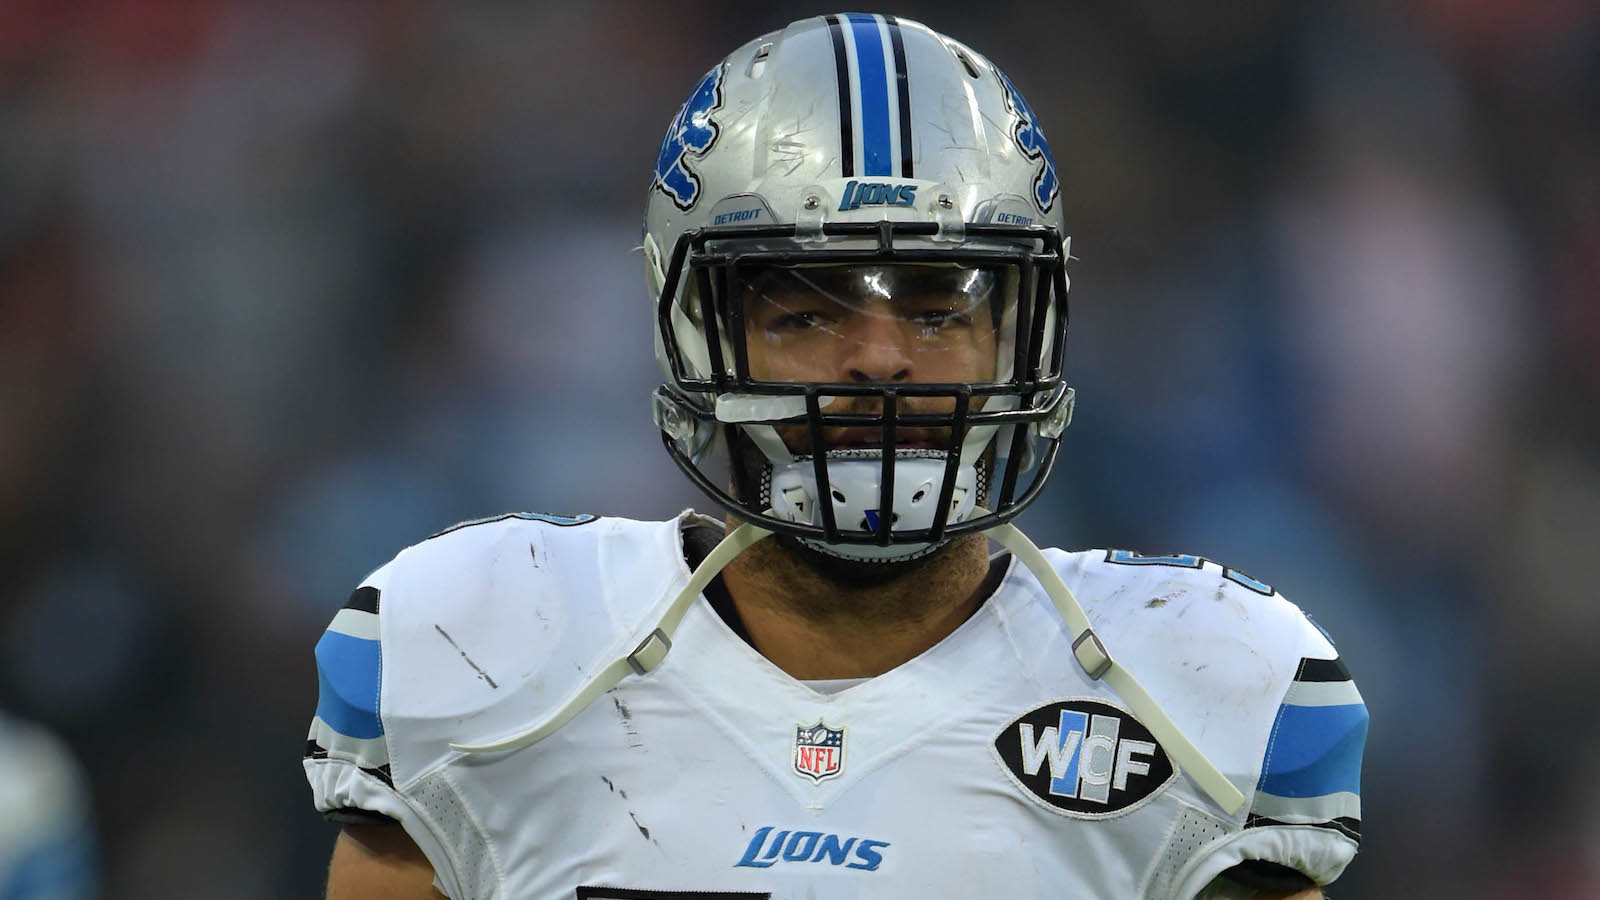 Report: Patriots acquire former 2nd-round pick Kyle Van Noy from Lions